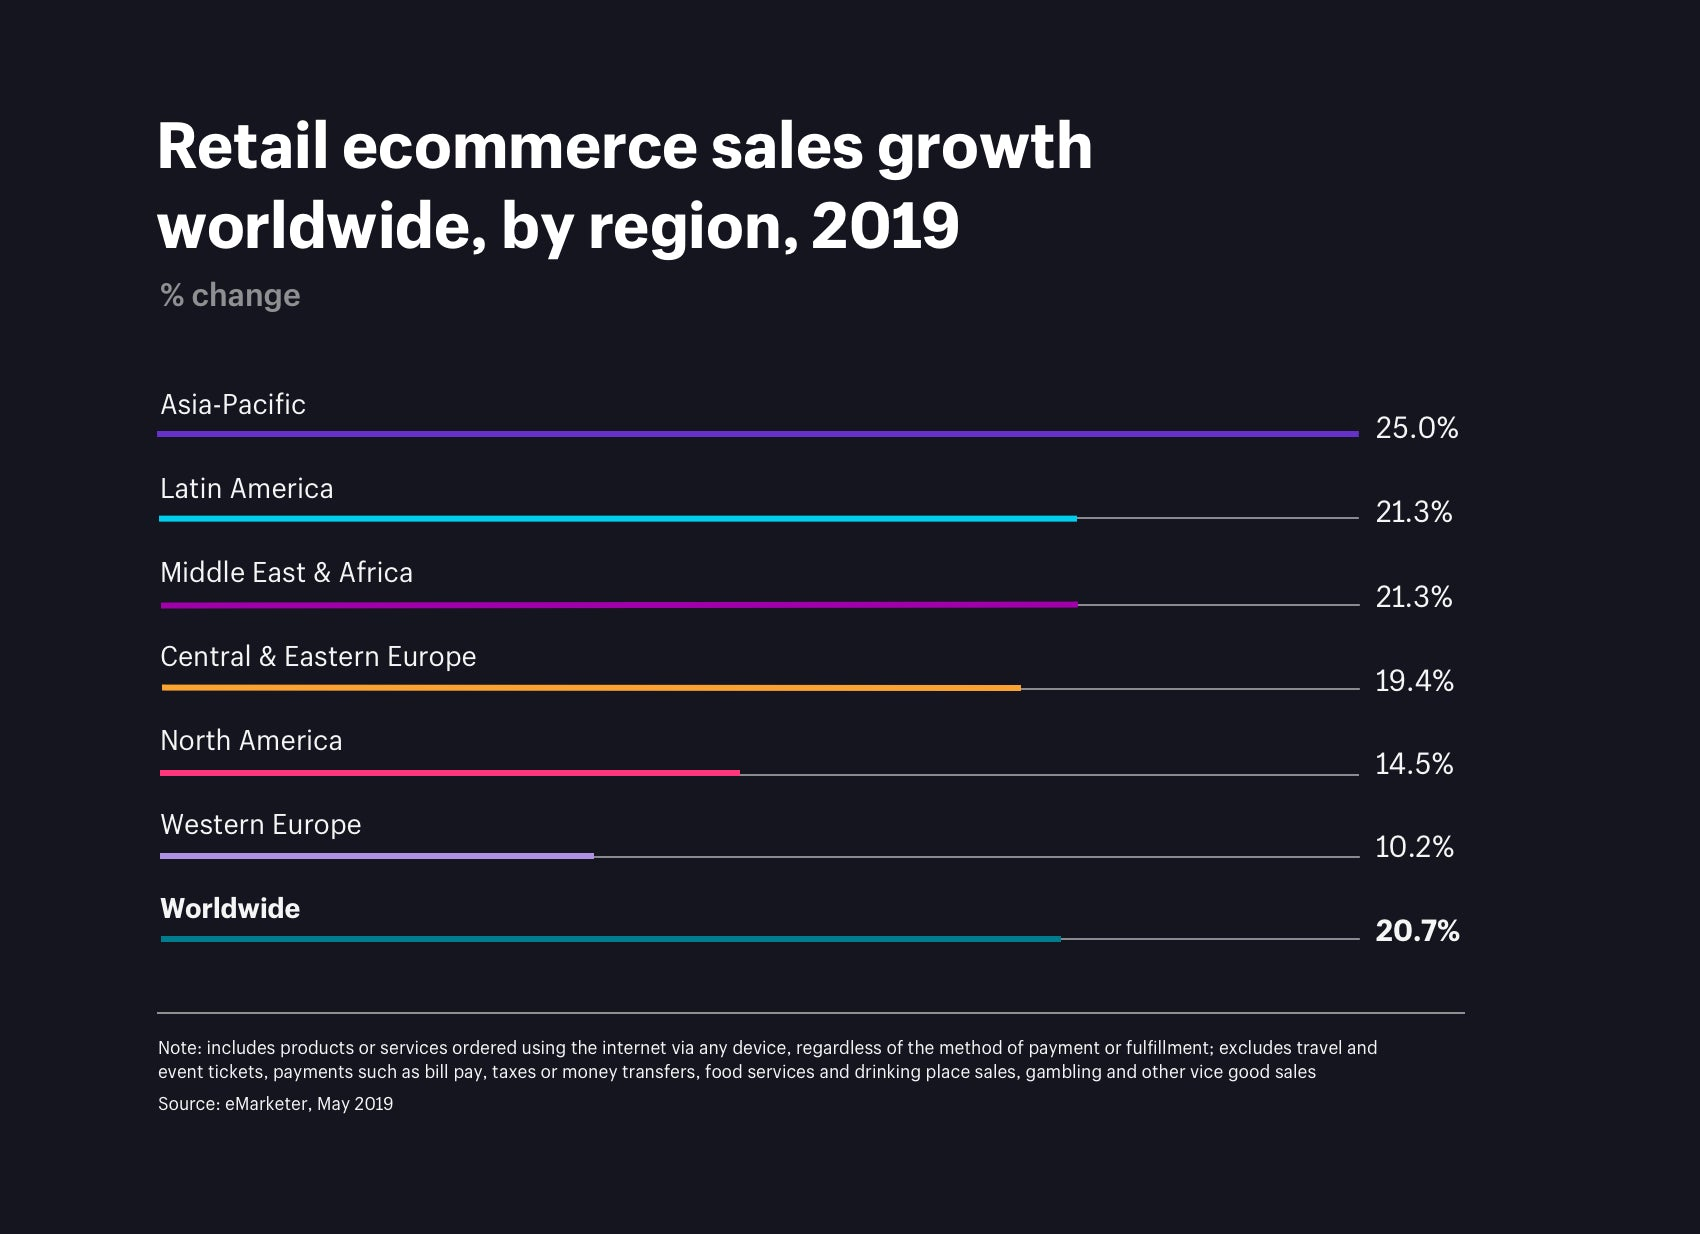 Retail ecommerce sales growth worldwide, by region